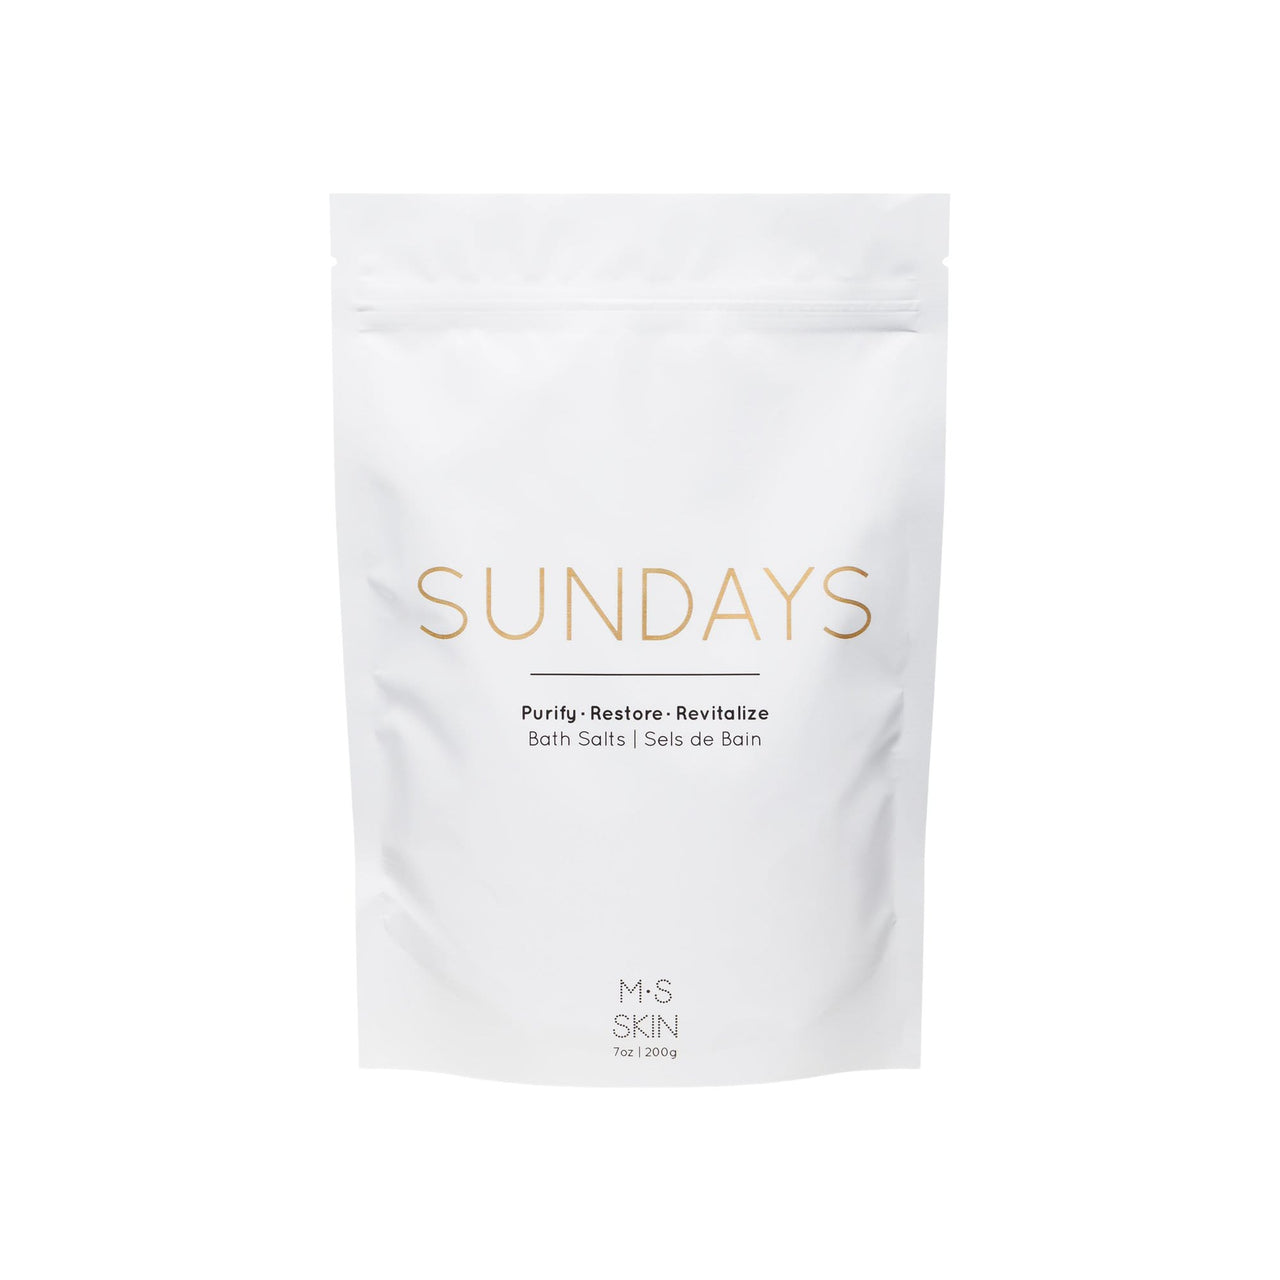 M.S Skincare Body Sundays Detox Bath Salts